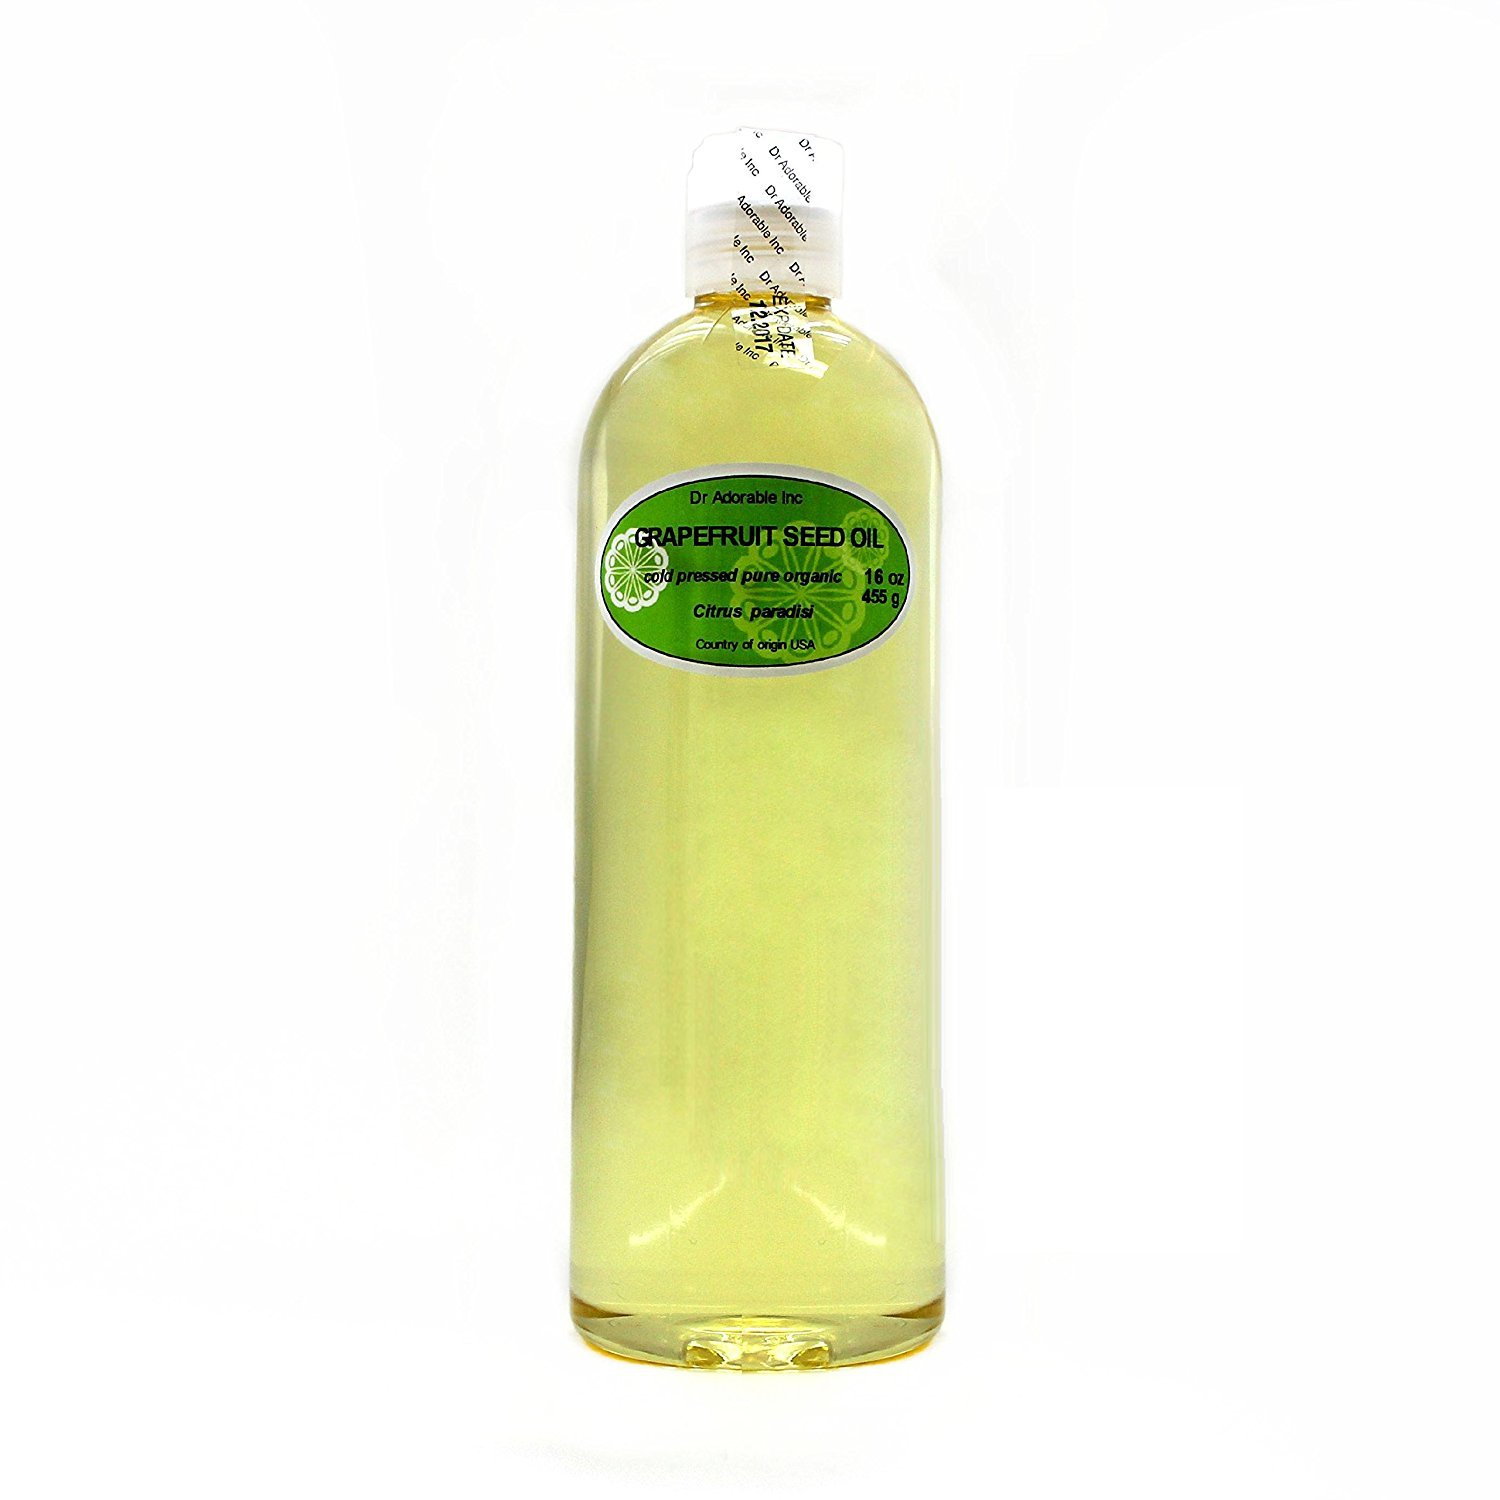 Grapefruit Seed Oil Organic Cold Pressed 100% Pure 16 Oz / 1 Pint